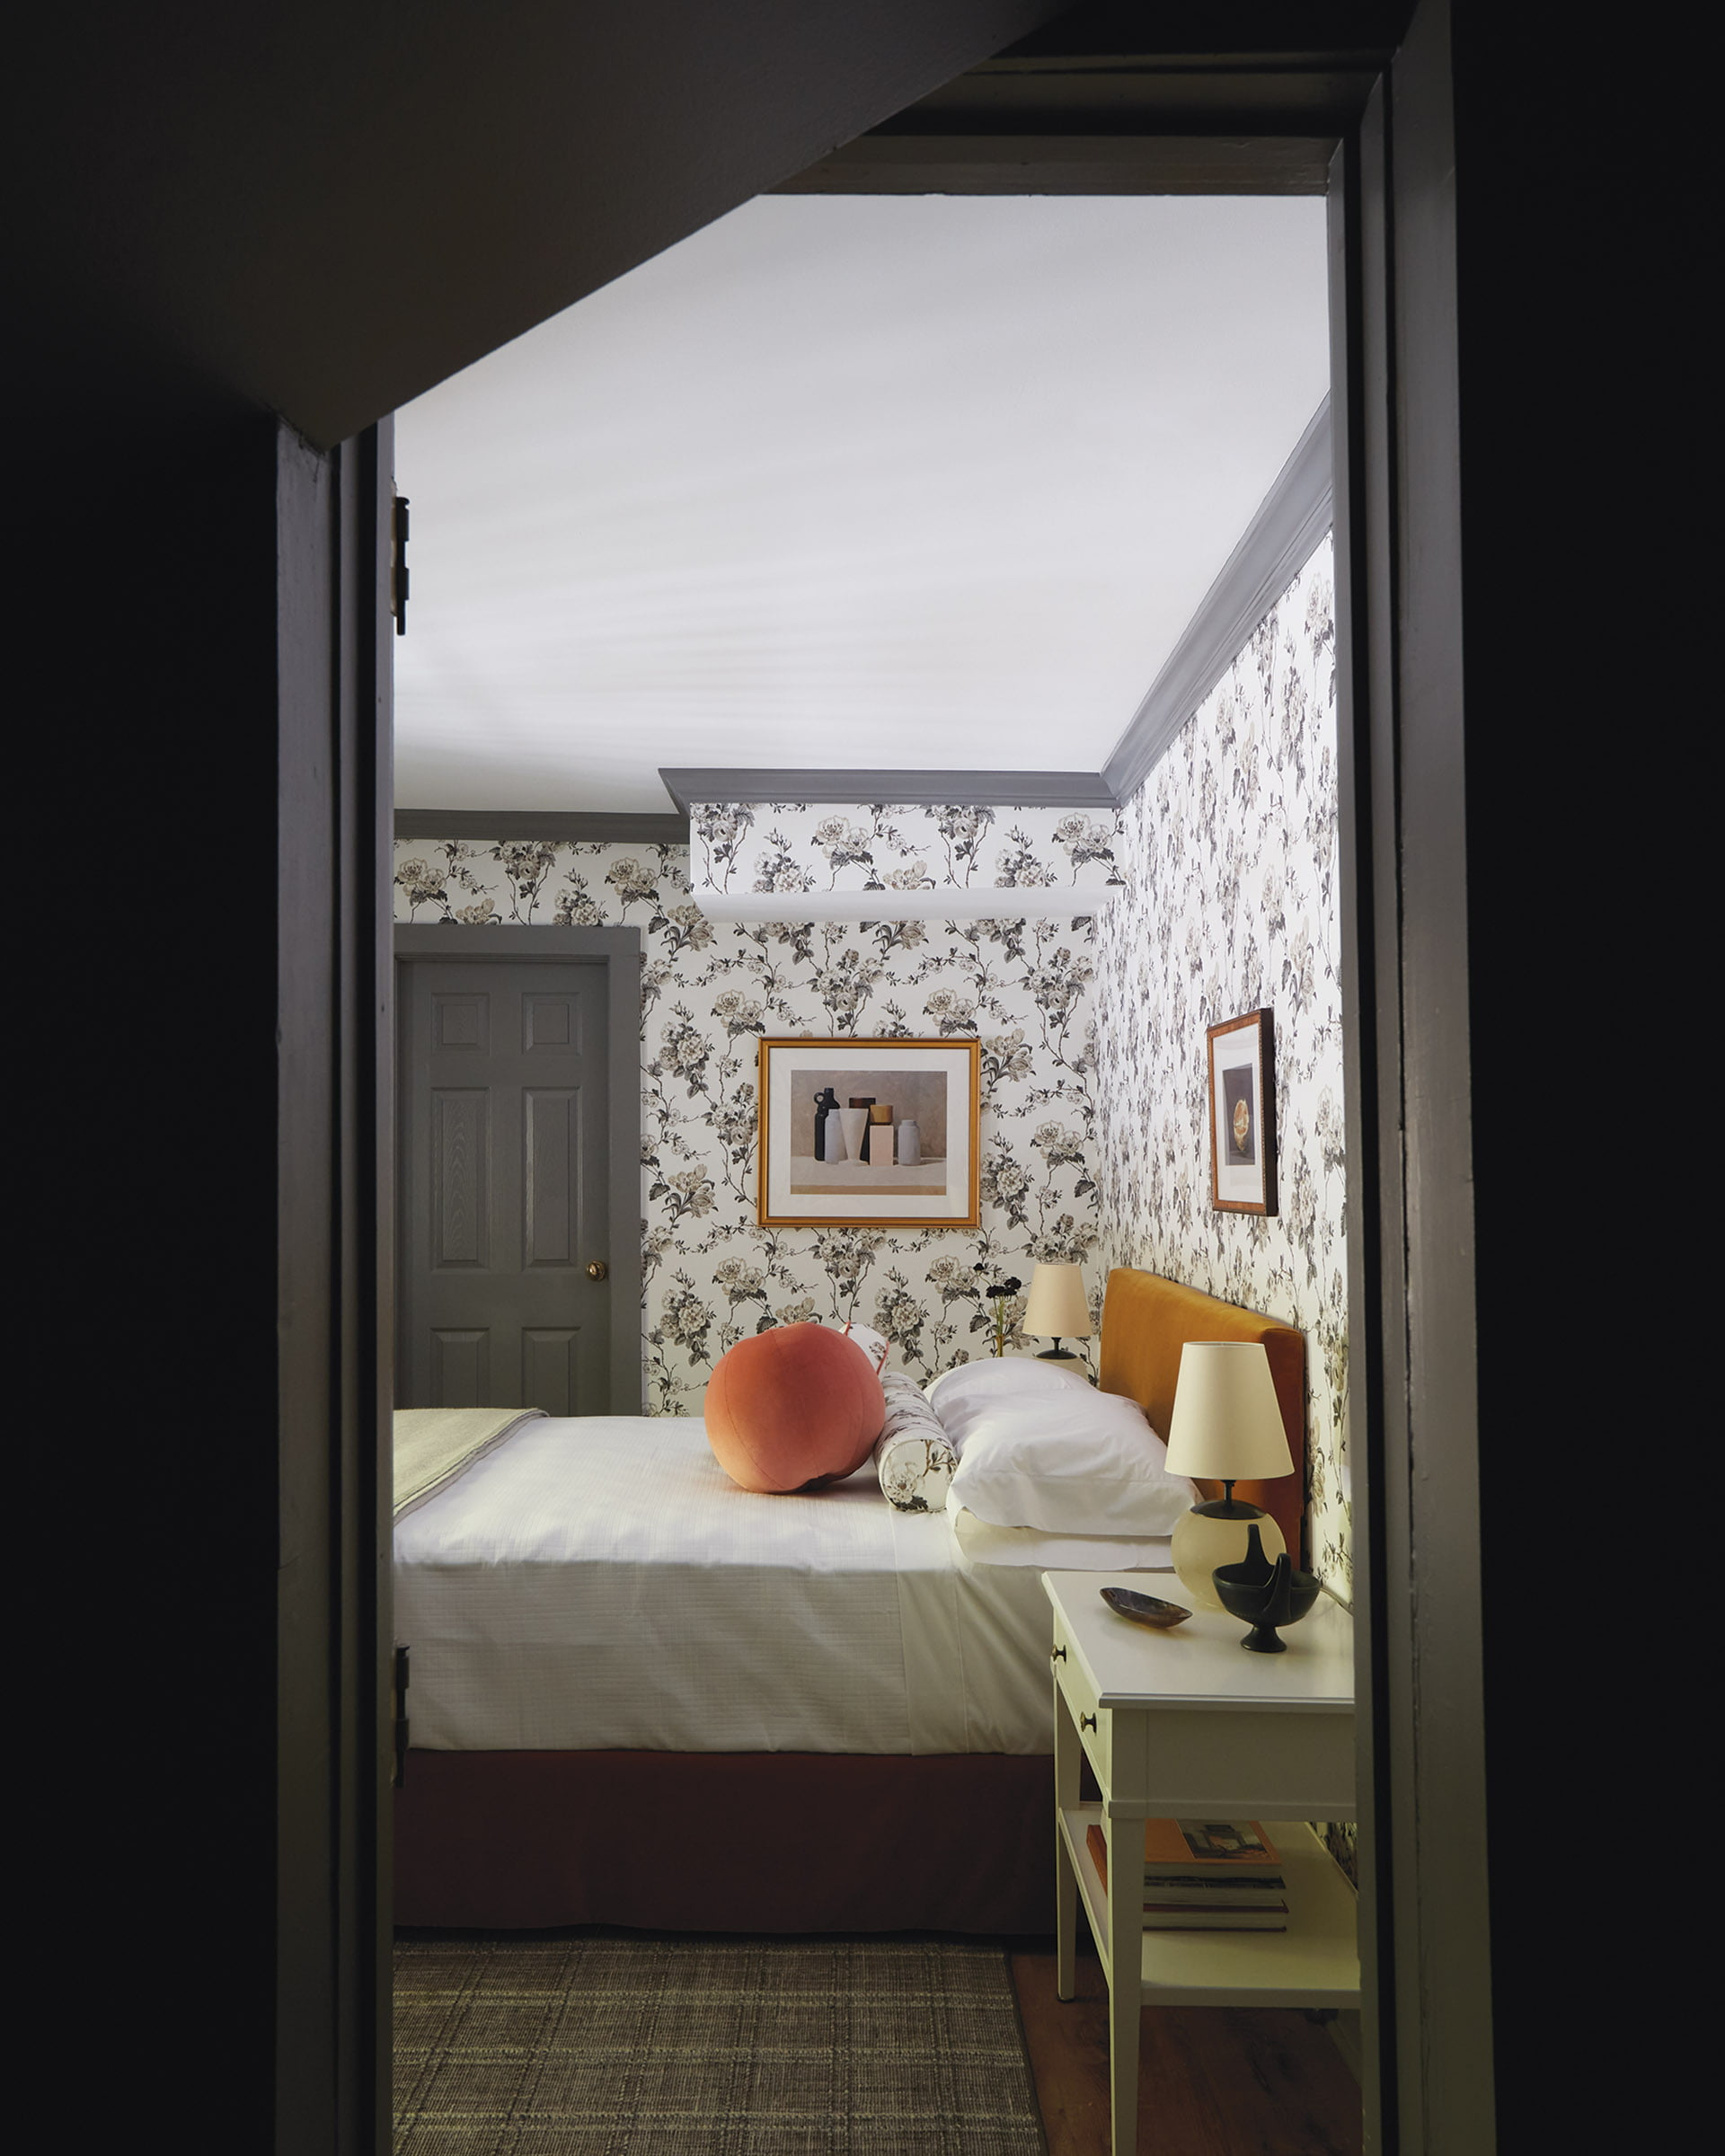 Flowery Schumacher wallpaper in a charcoal colorway.